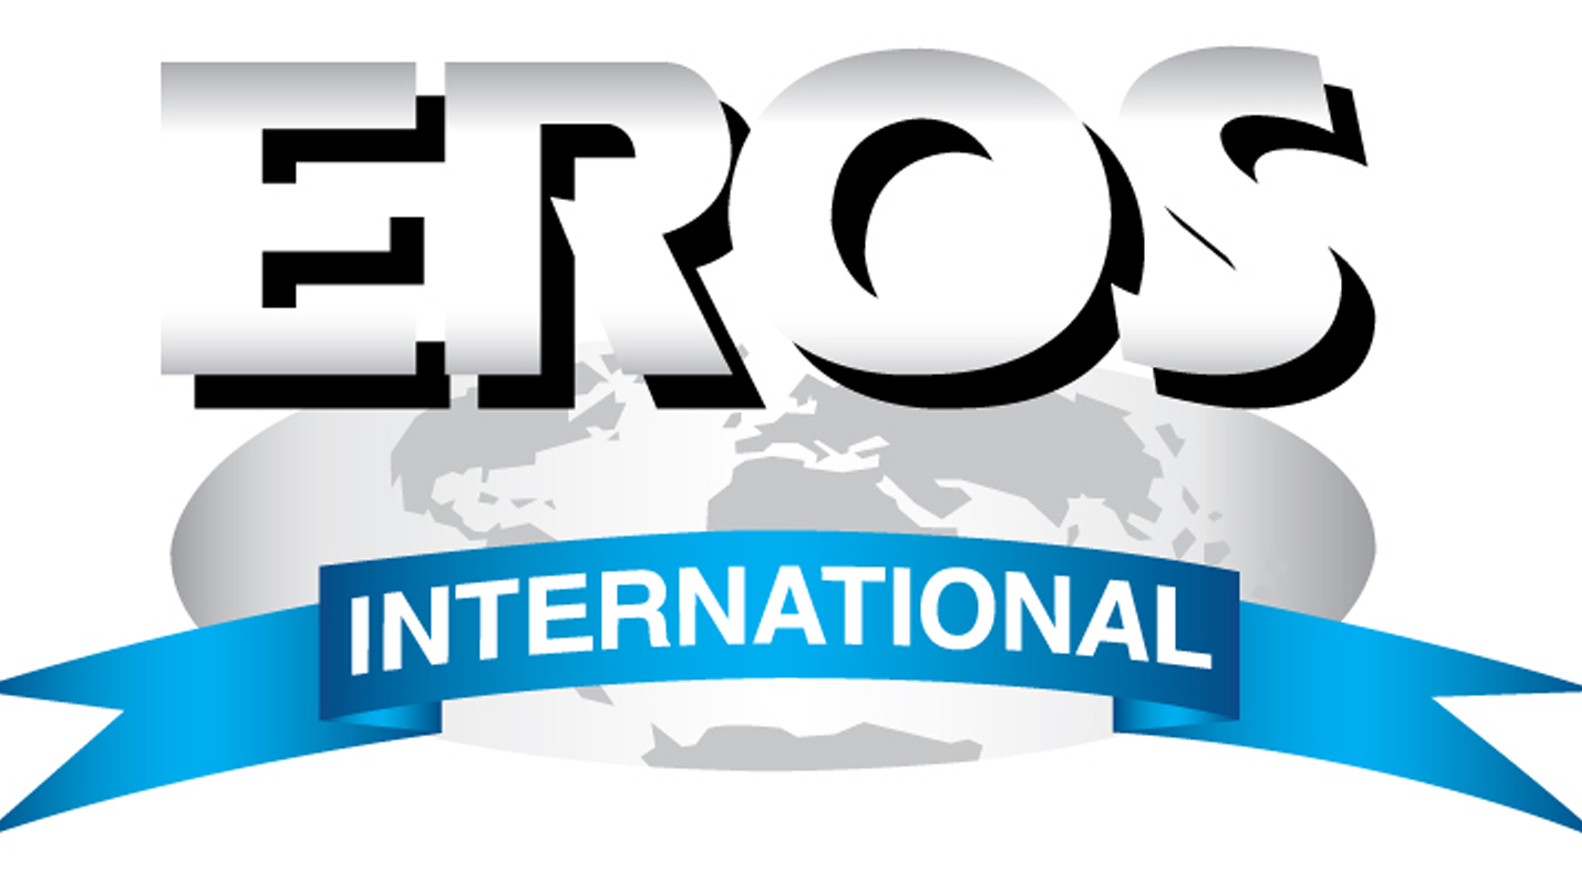 Eros International ties up with Diamond Comics